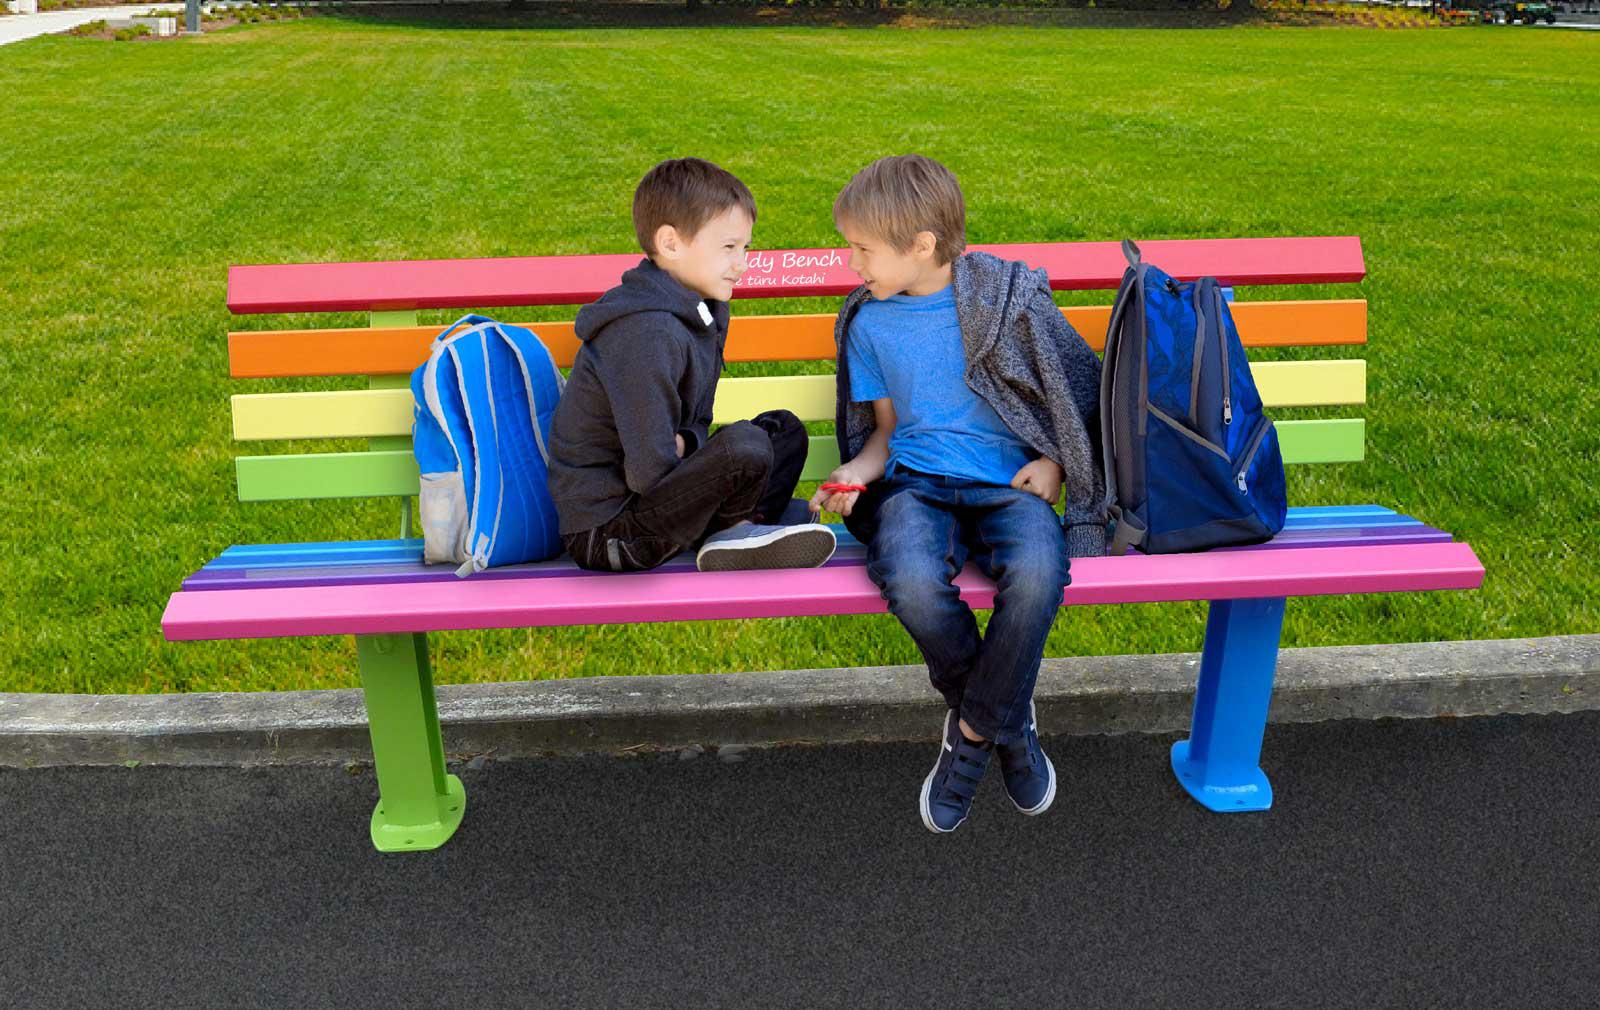 A safe seat: can buddy benches banish bullying and build better communities?